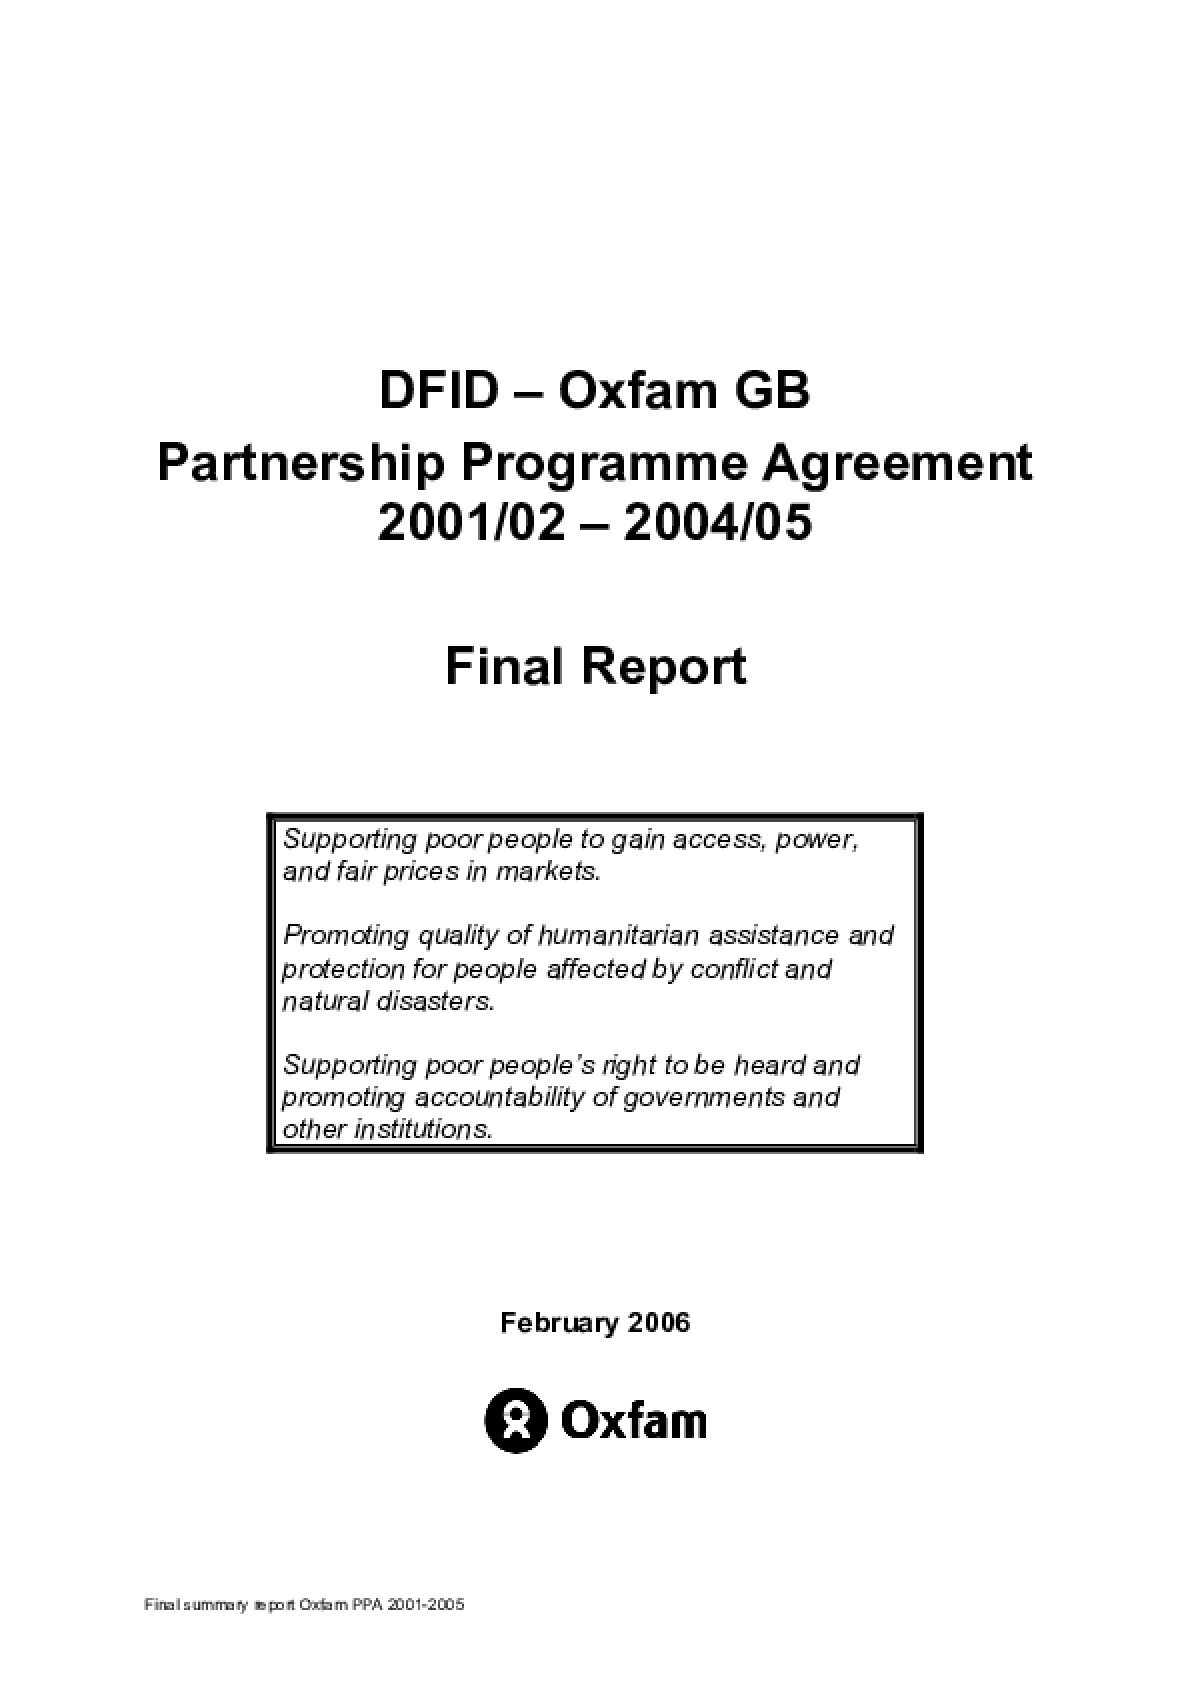 DFID and Oxfam GB Partnership Programme Agreement 2001/02 - 2004/05